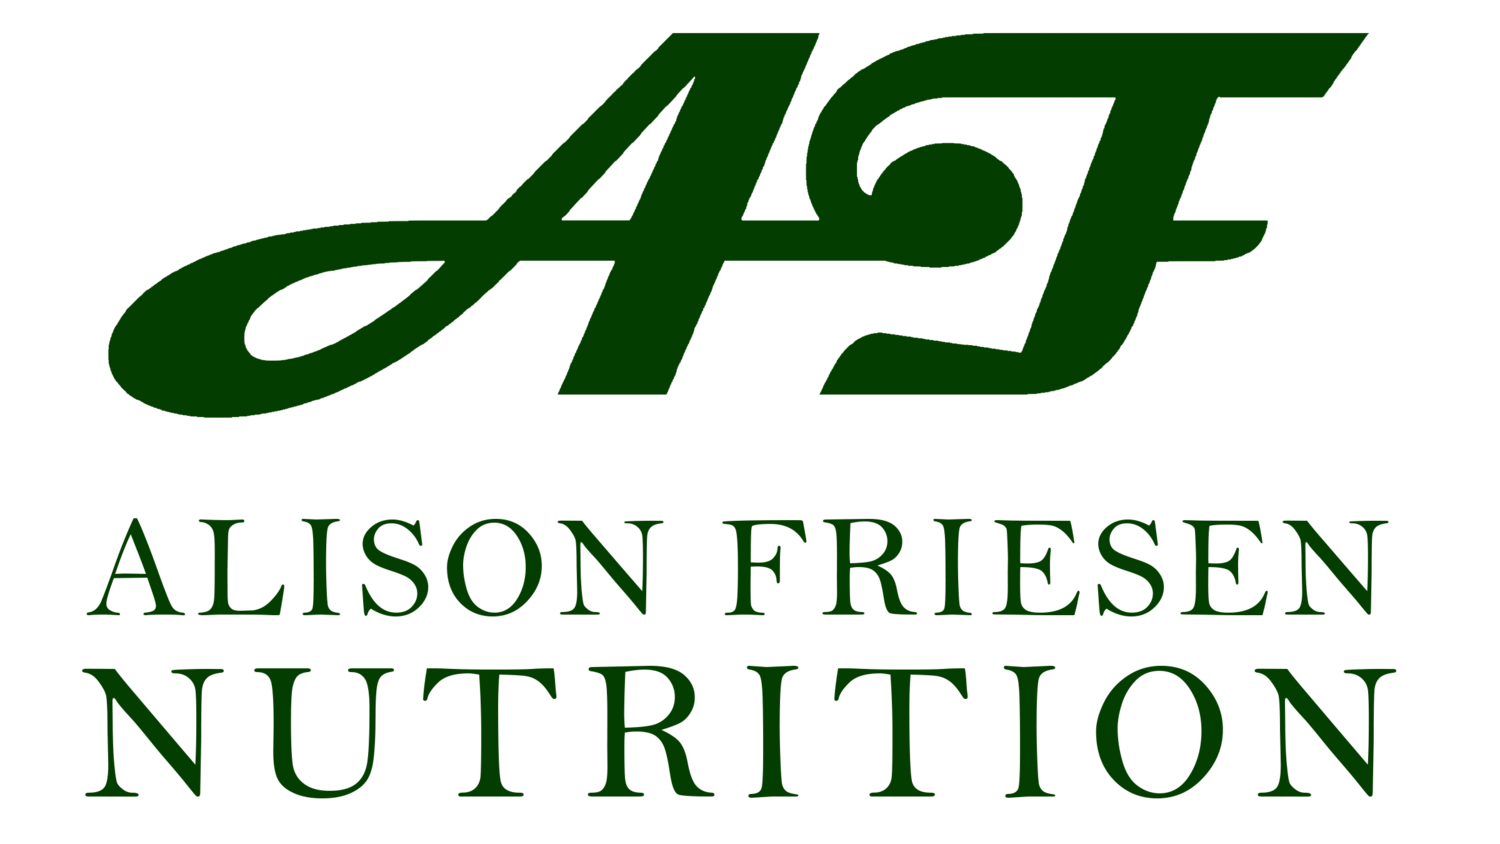 Alison Friesen Nutrition